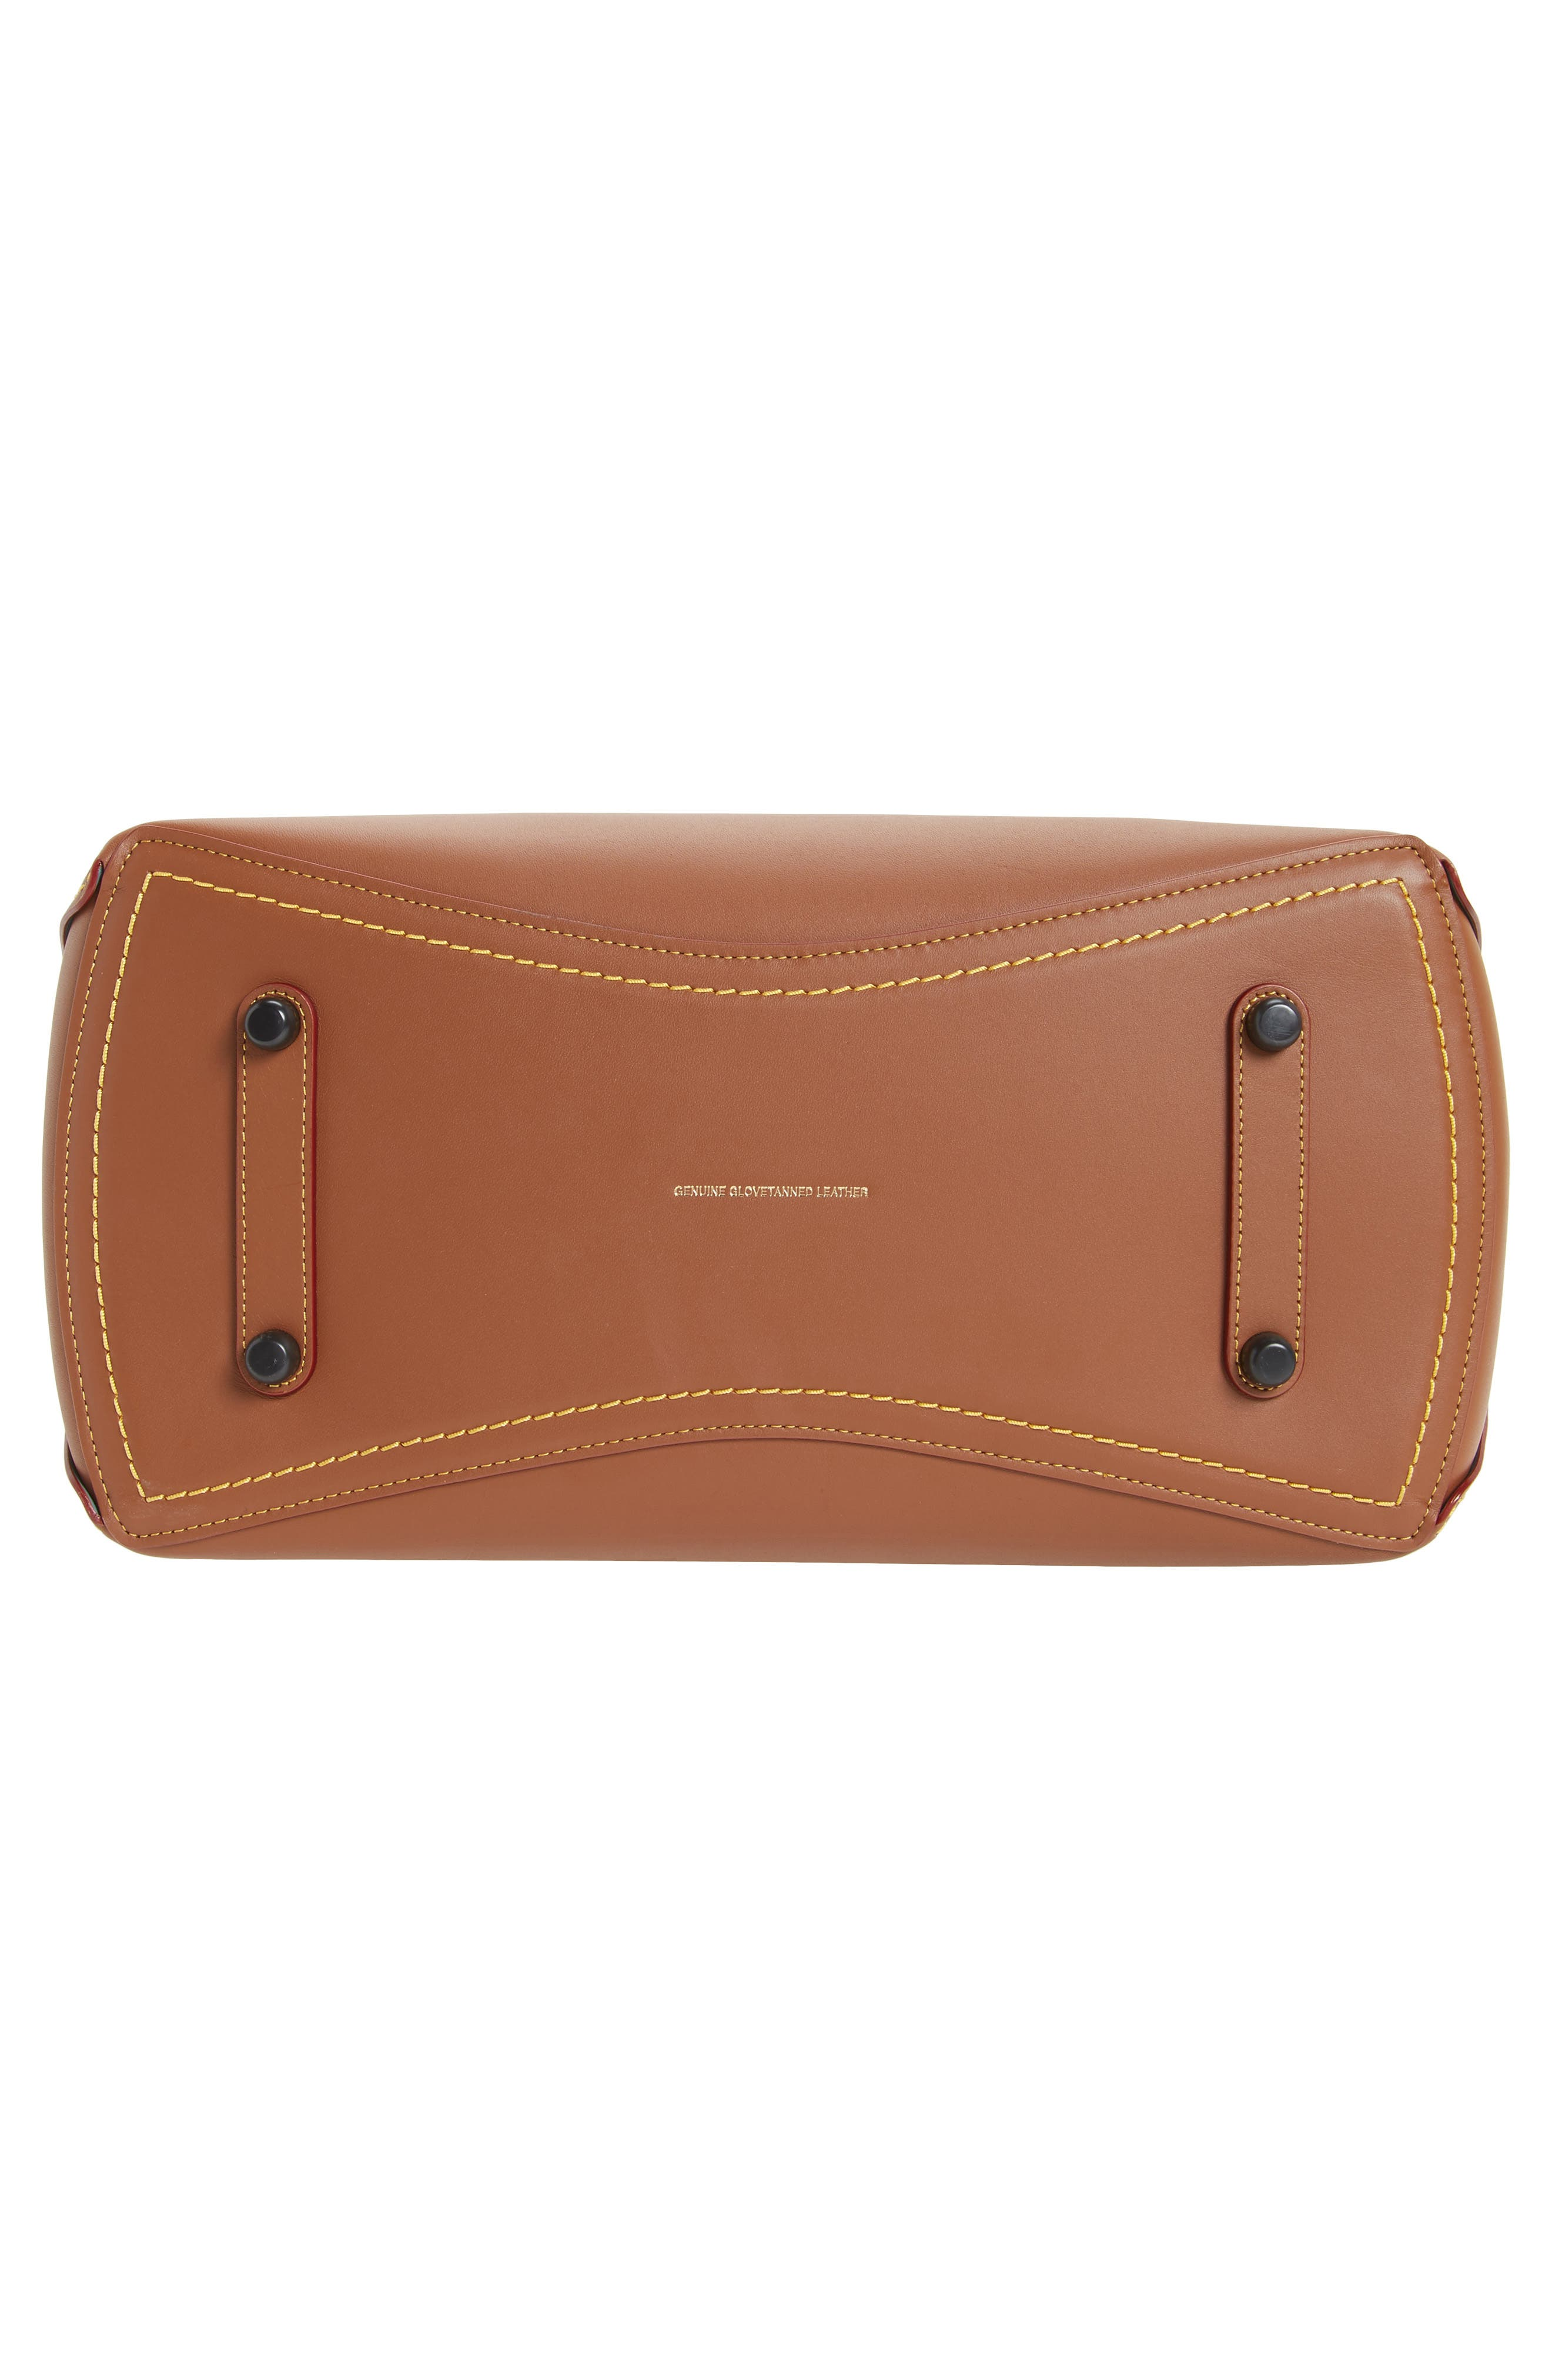 Rogue Leather Tote,                             Alternate thumbnail 6, color,                             232